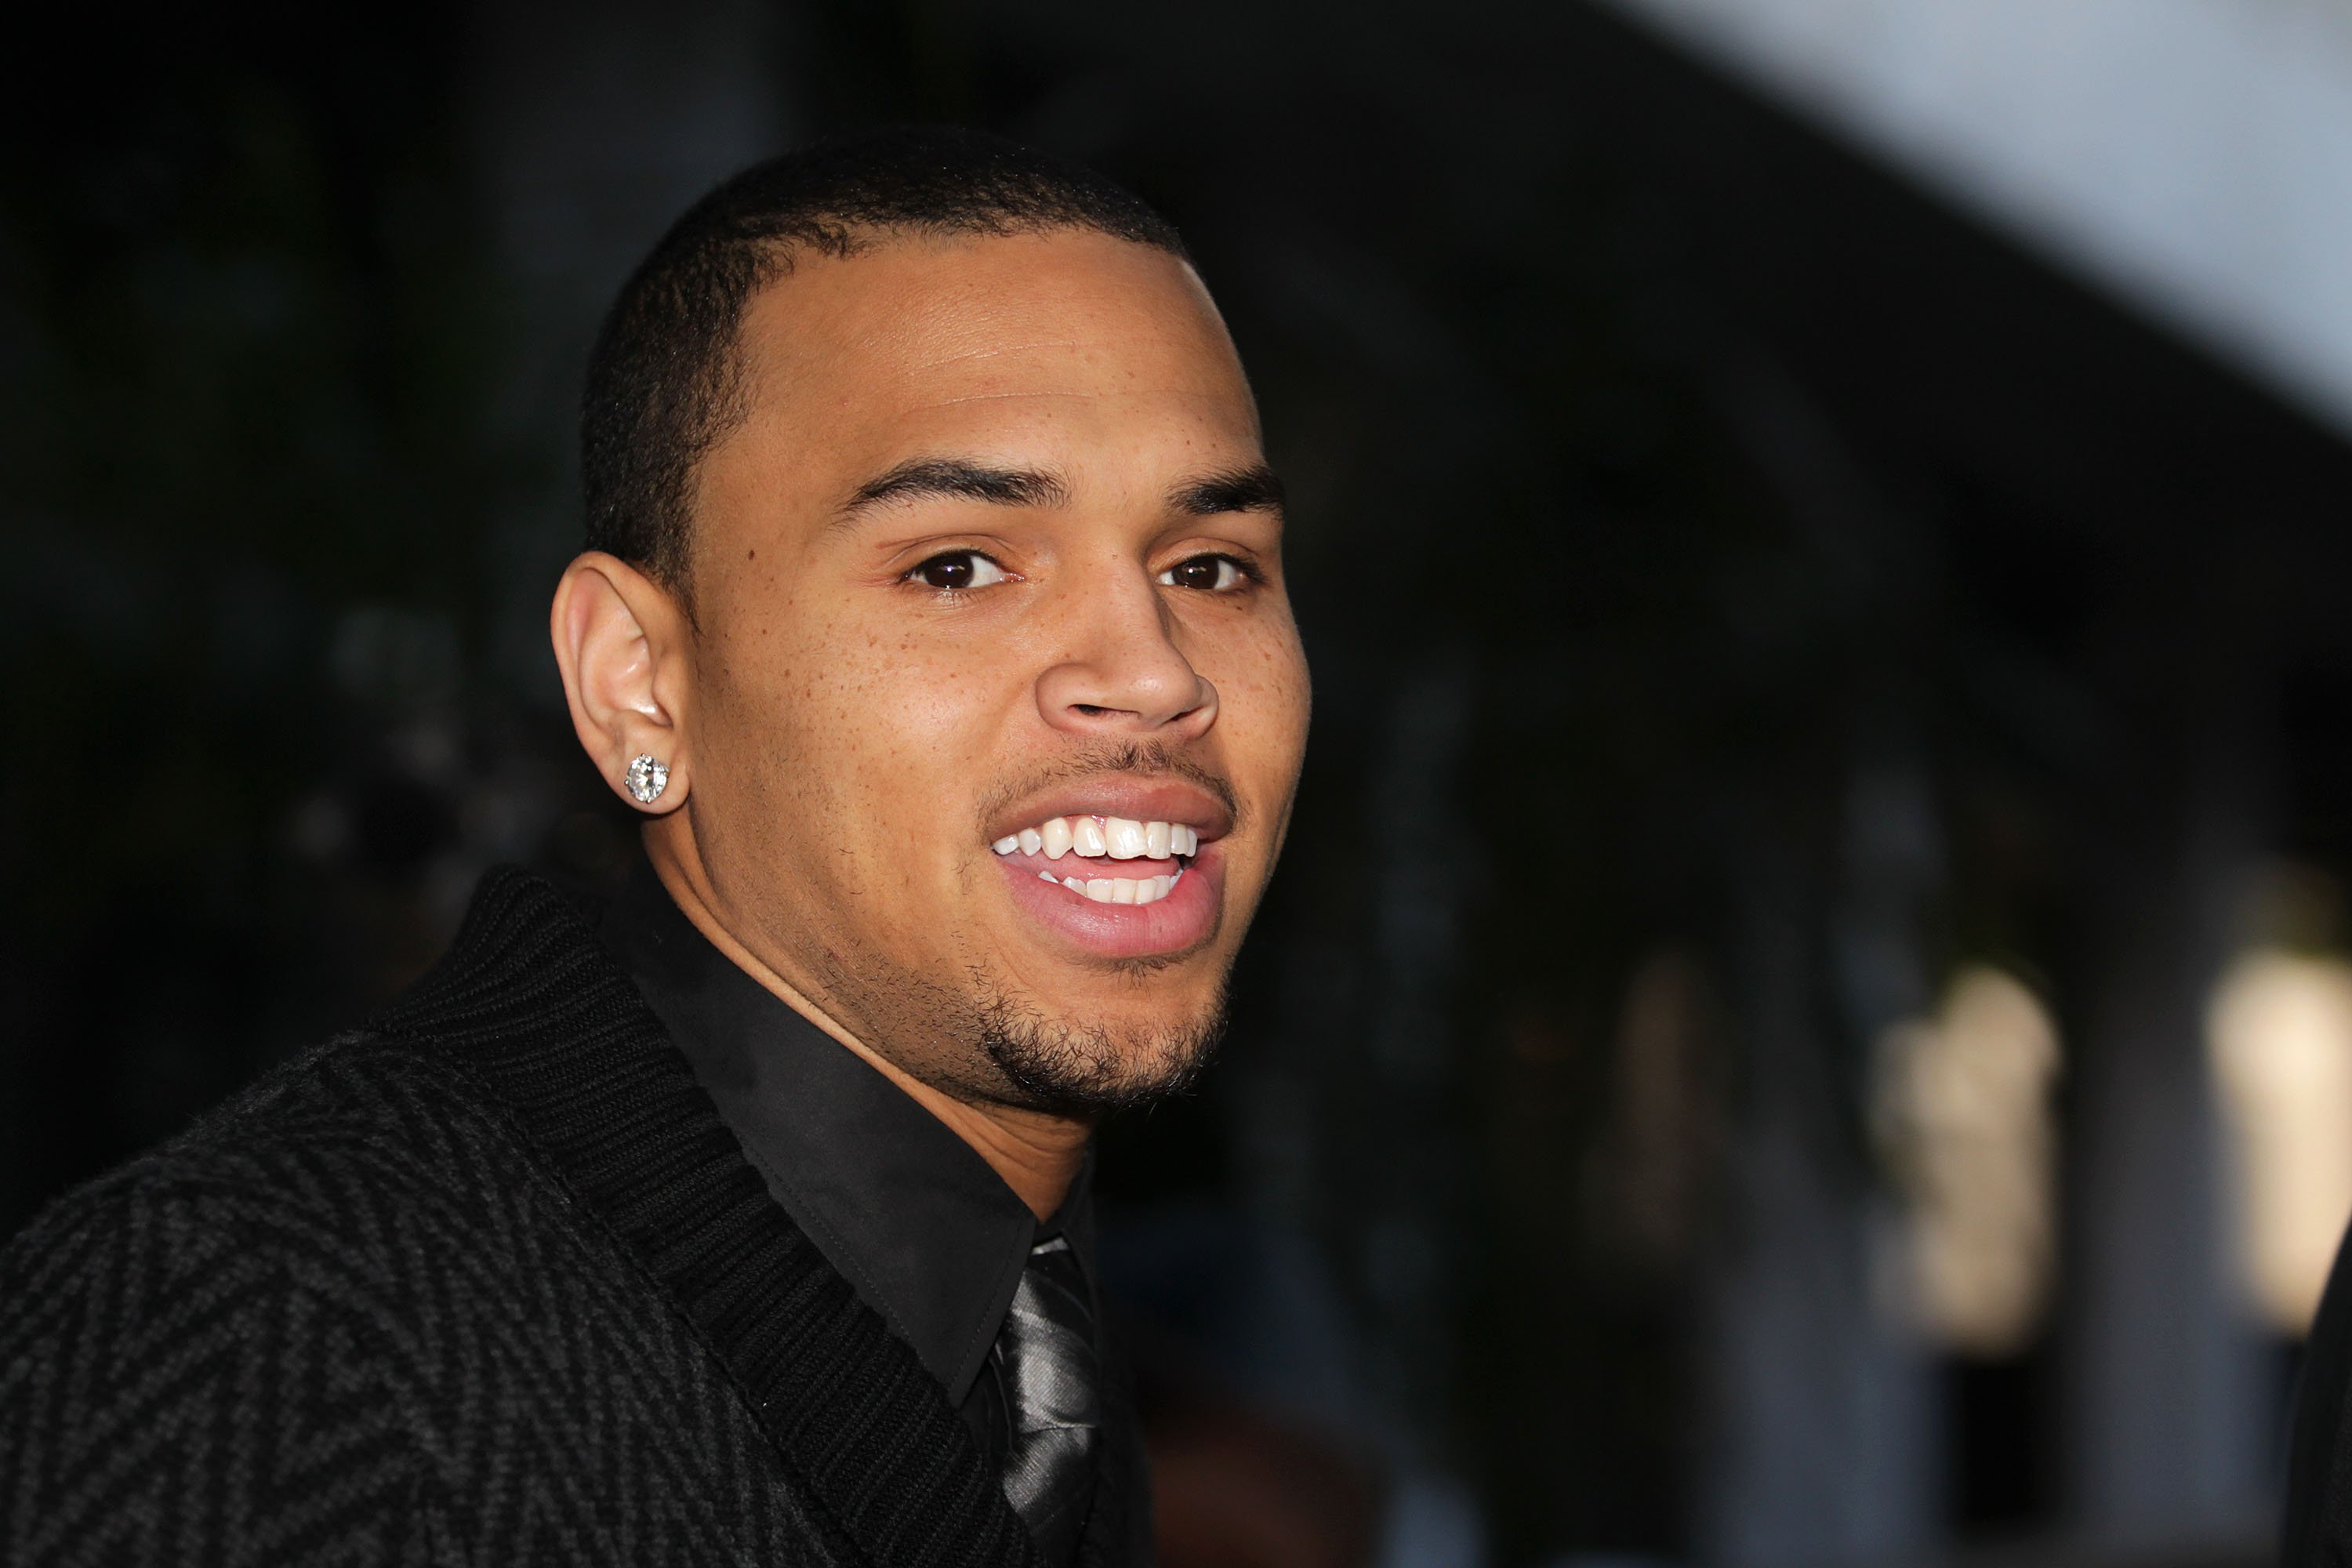 Chris Brown leaving the Los Angeles courthouse after a probation progress hearing in January 2011. | Photo: Getty Images